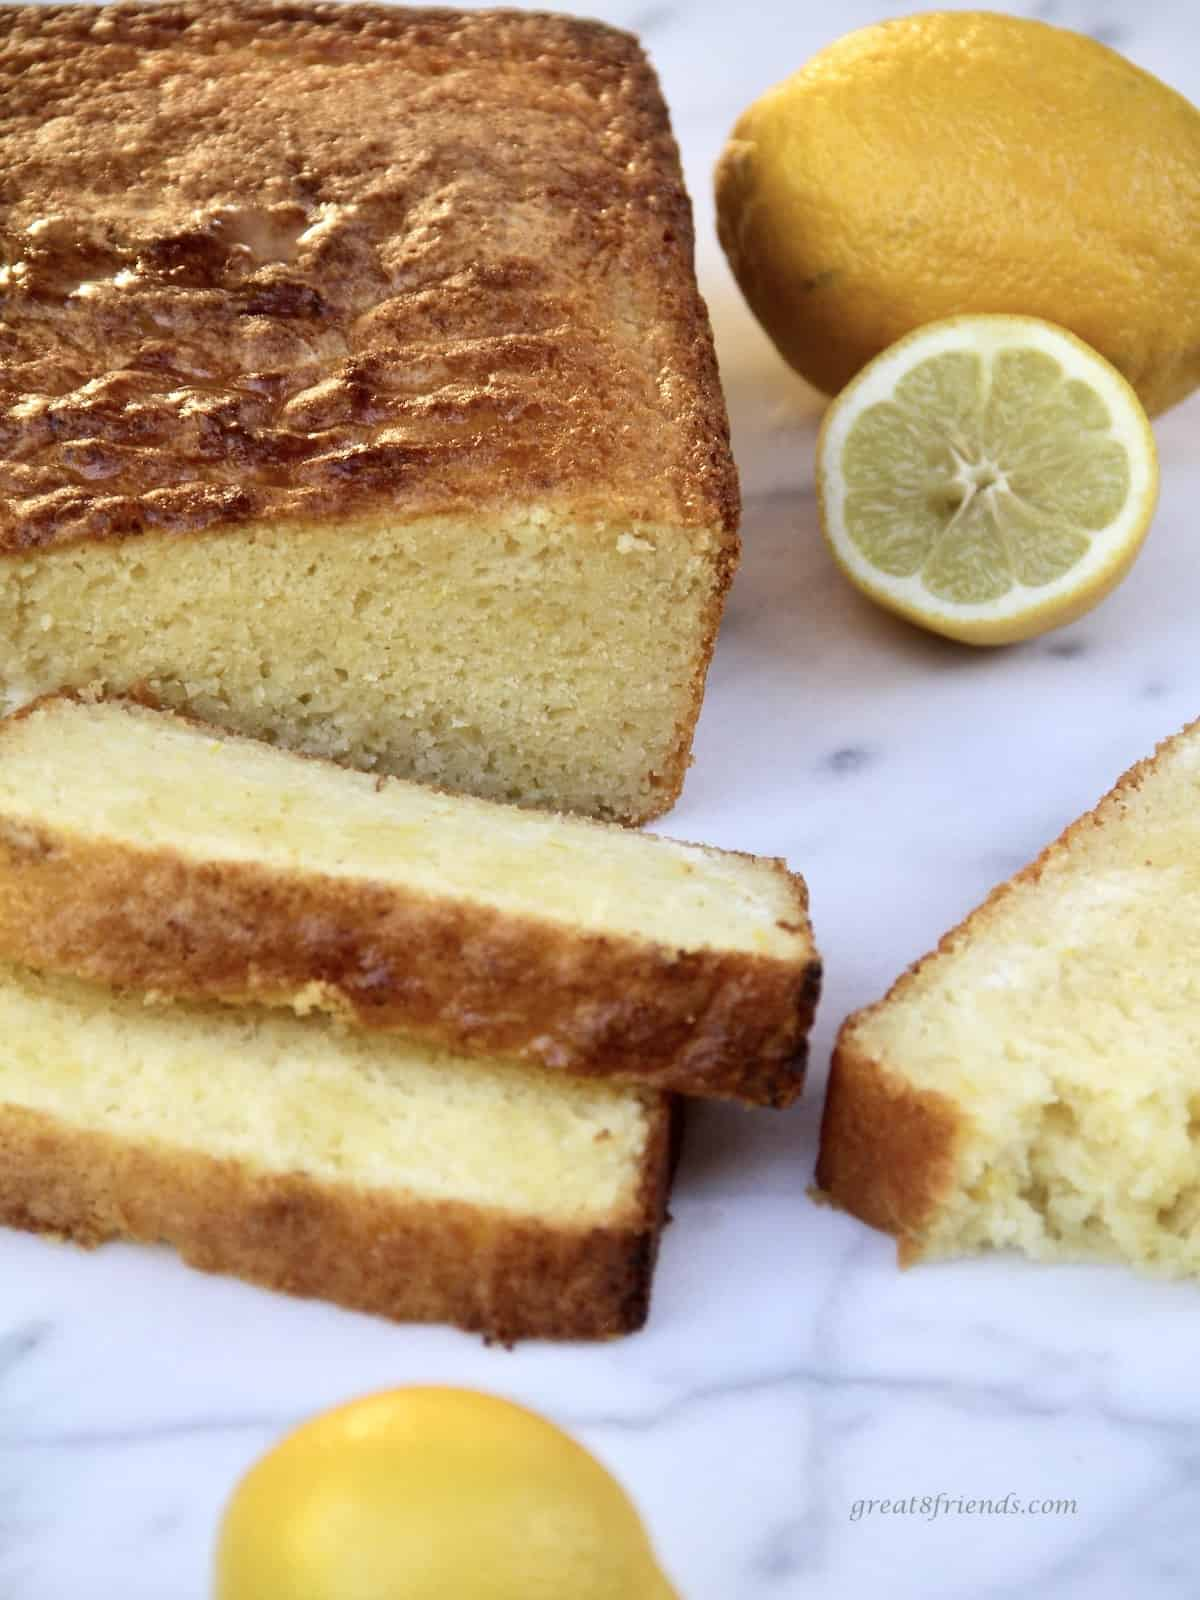 Lemon pound cake partially sliced with lemons on the side.